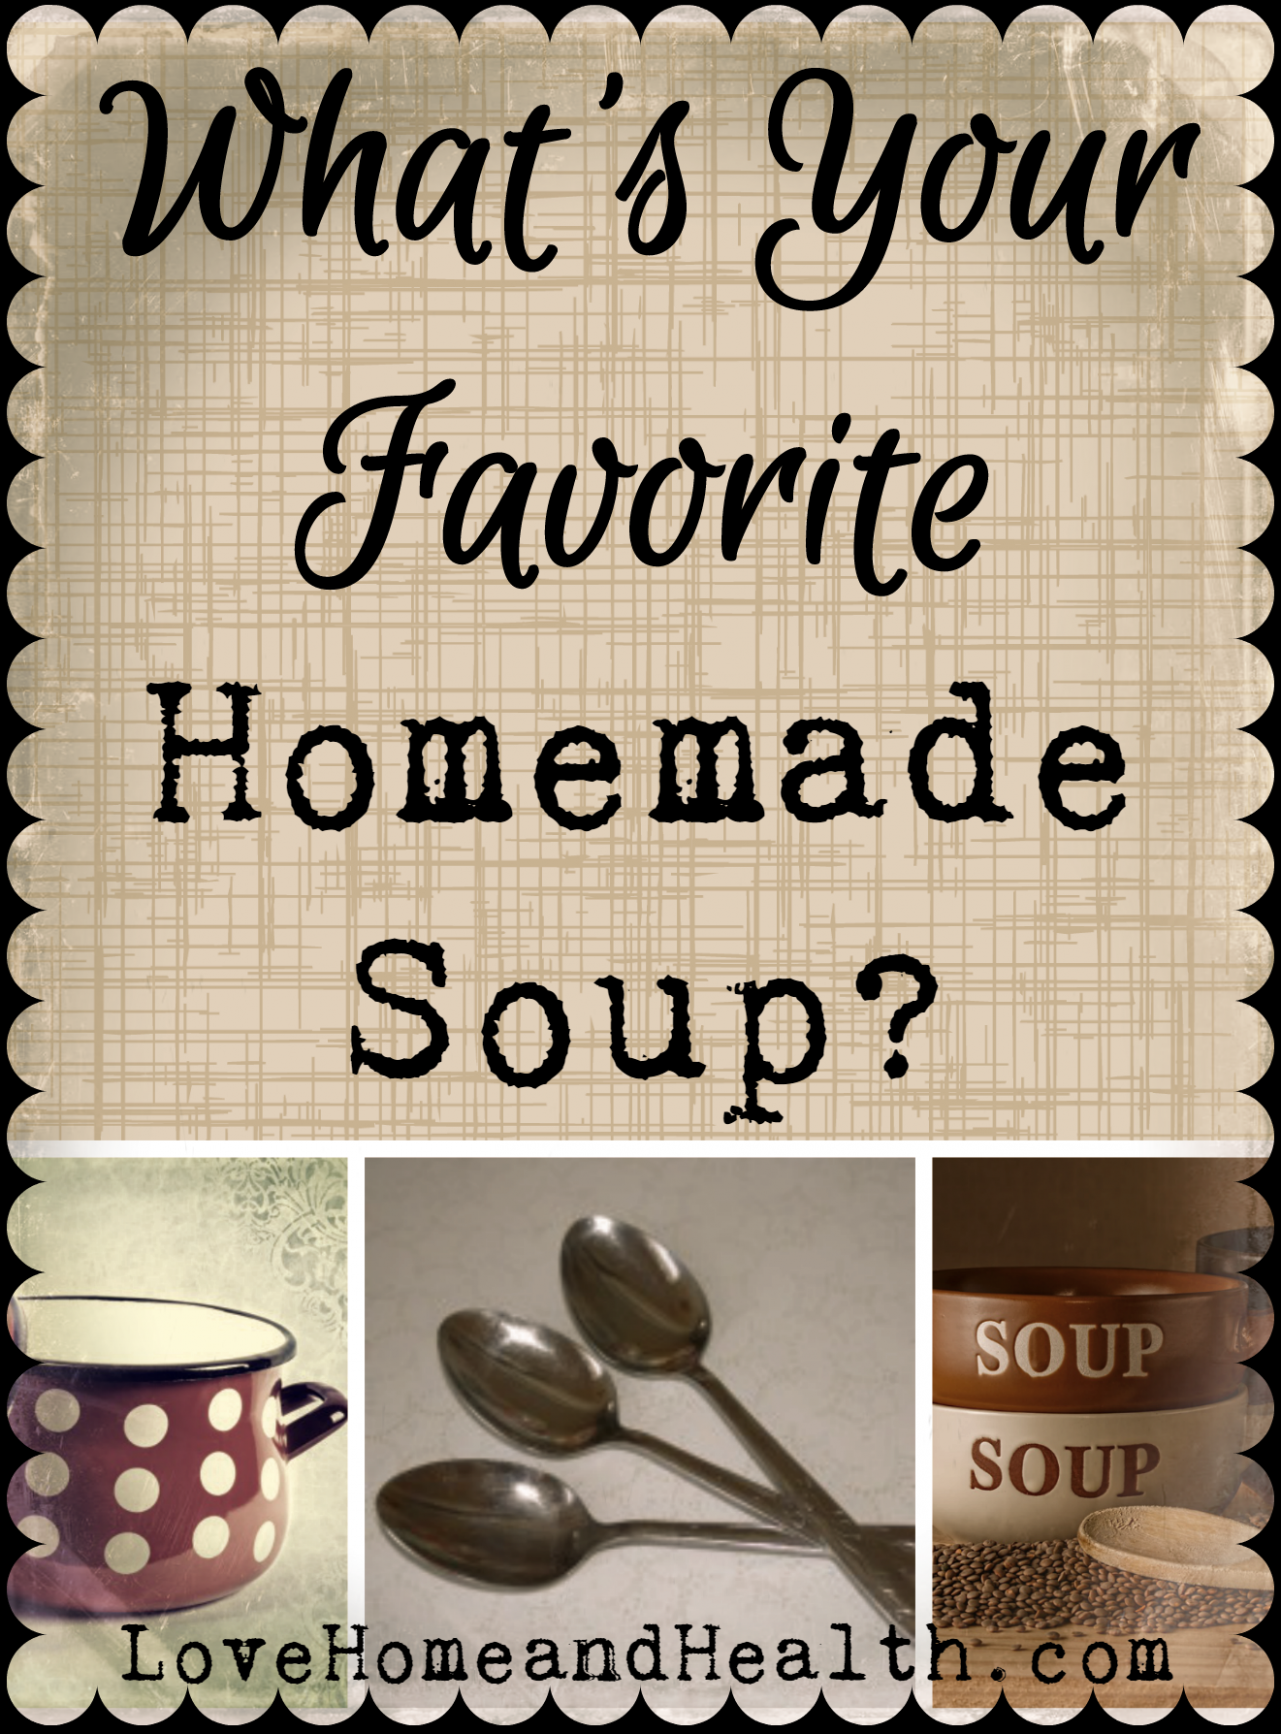 Quotes about Homemade soup (12 quotes) - Soup Recipes Quotes